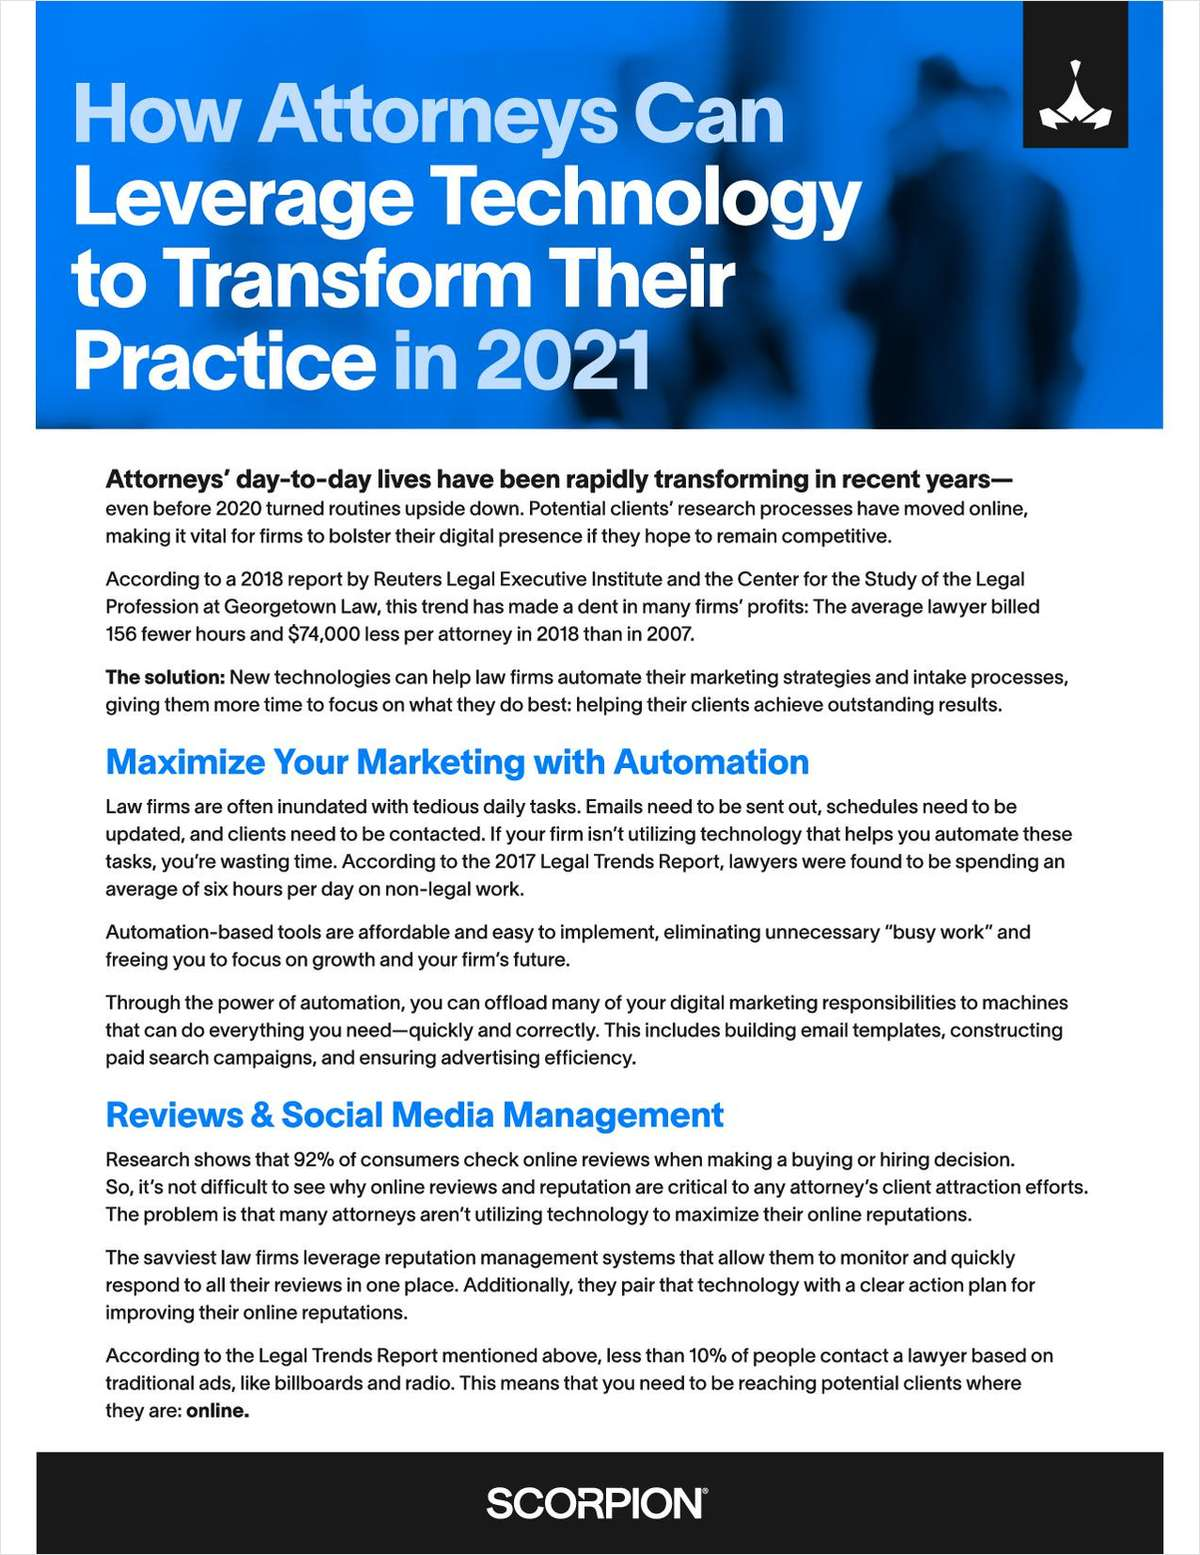 Your firm needs to bolster its digital presence in order to remain competitive. Learn how marketing automation can boost your firm revenue while giving you more time to help your clients achieve outstanding results.